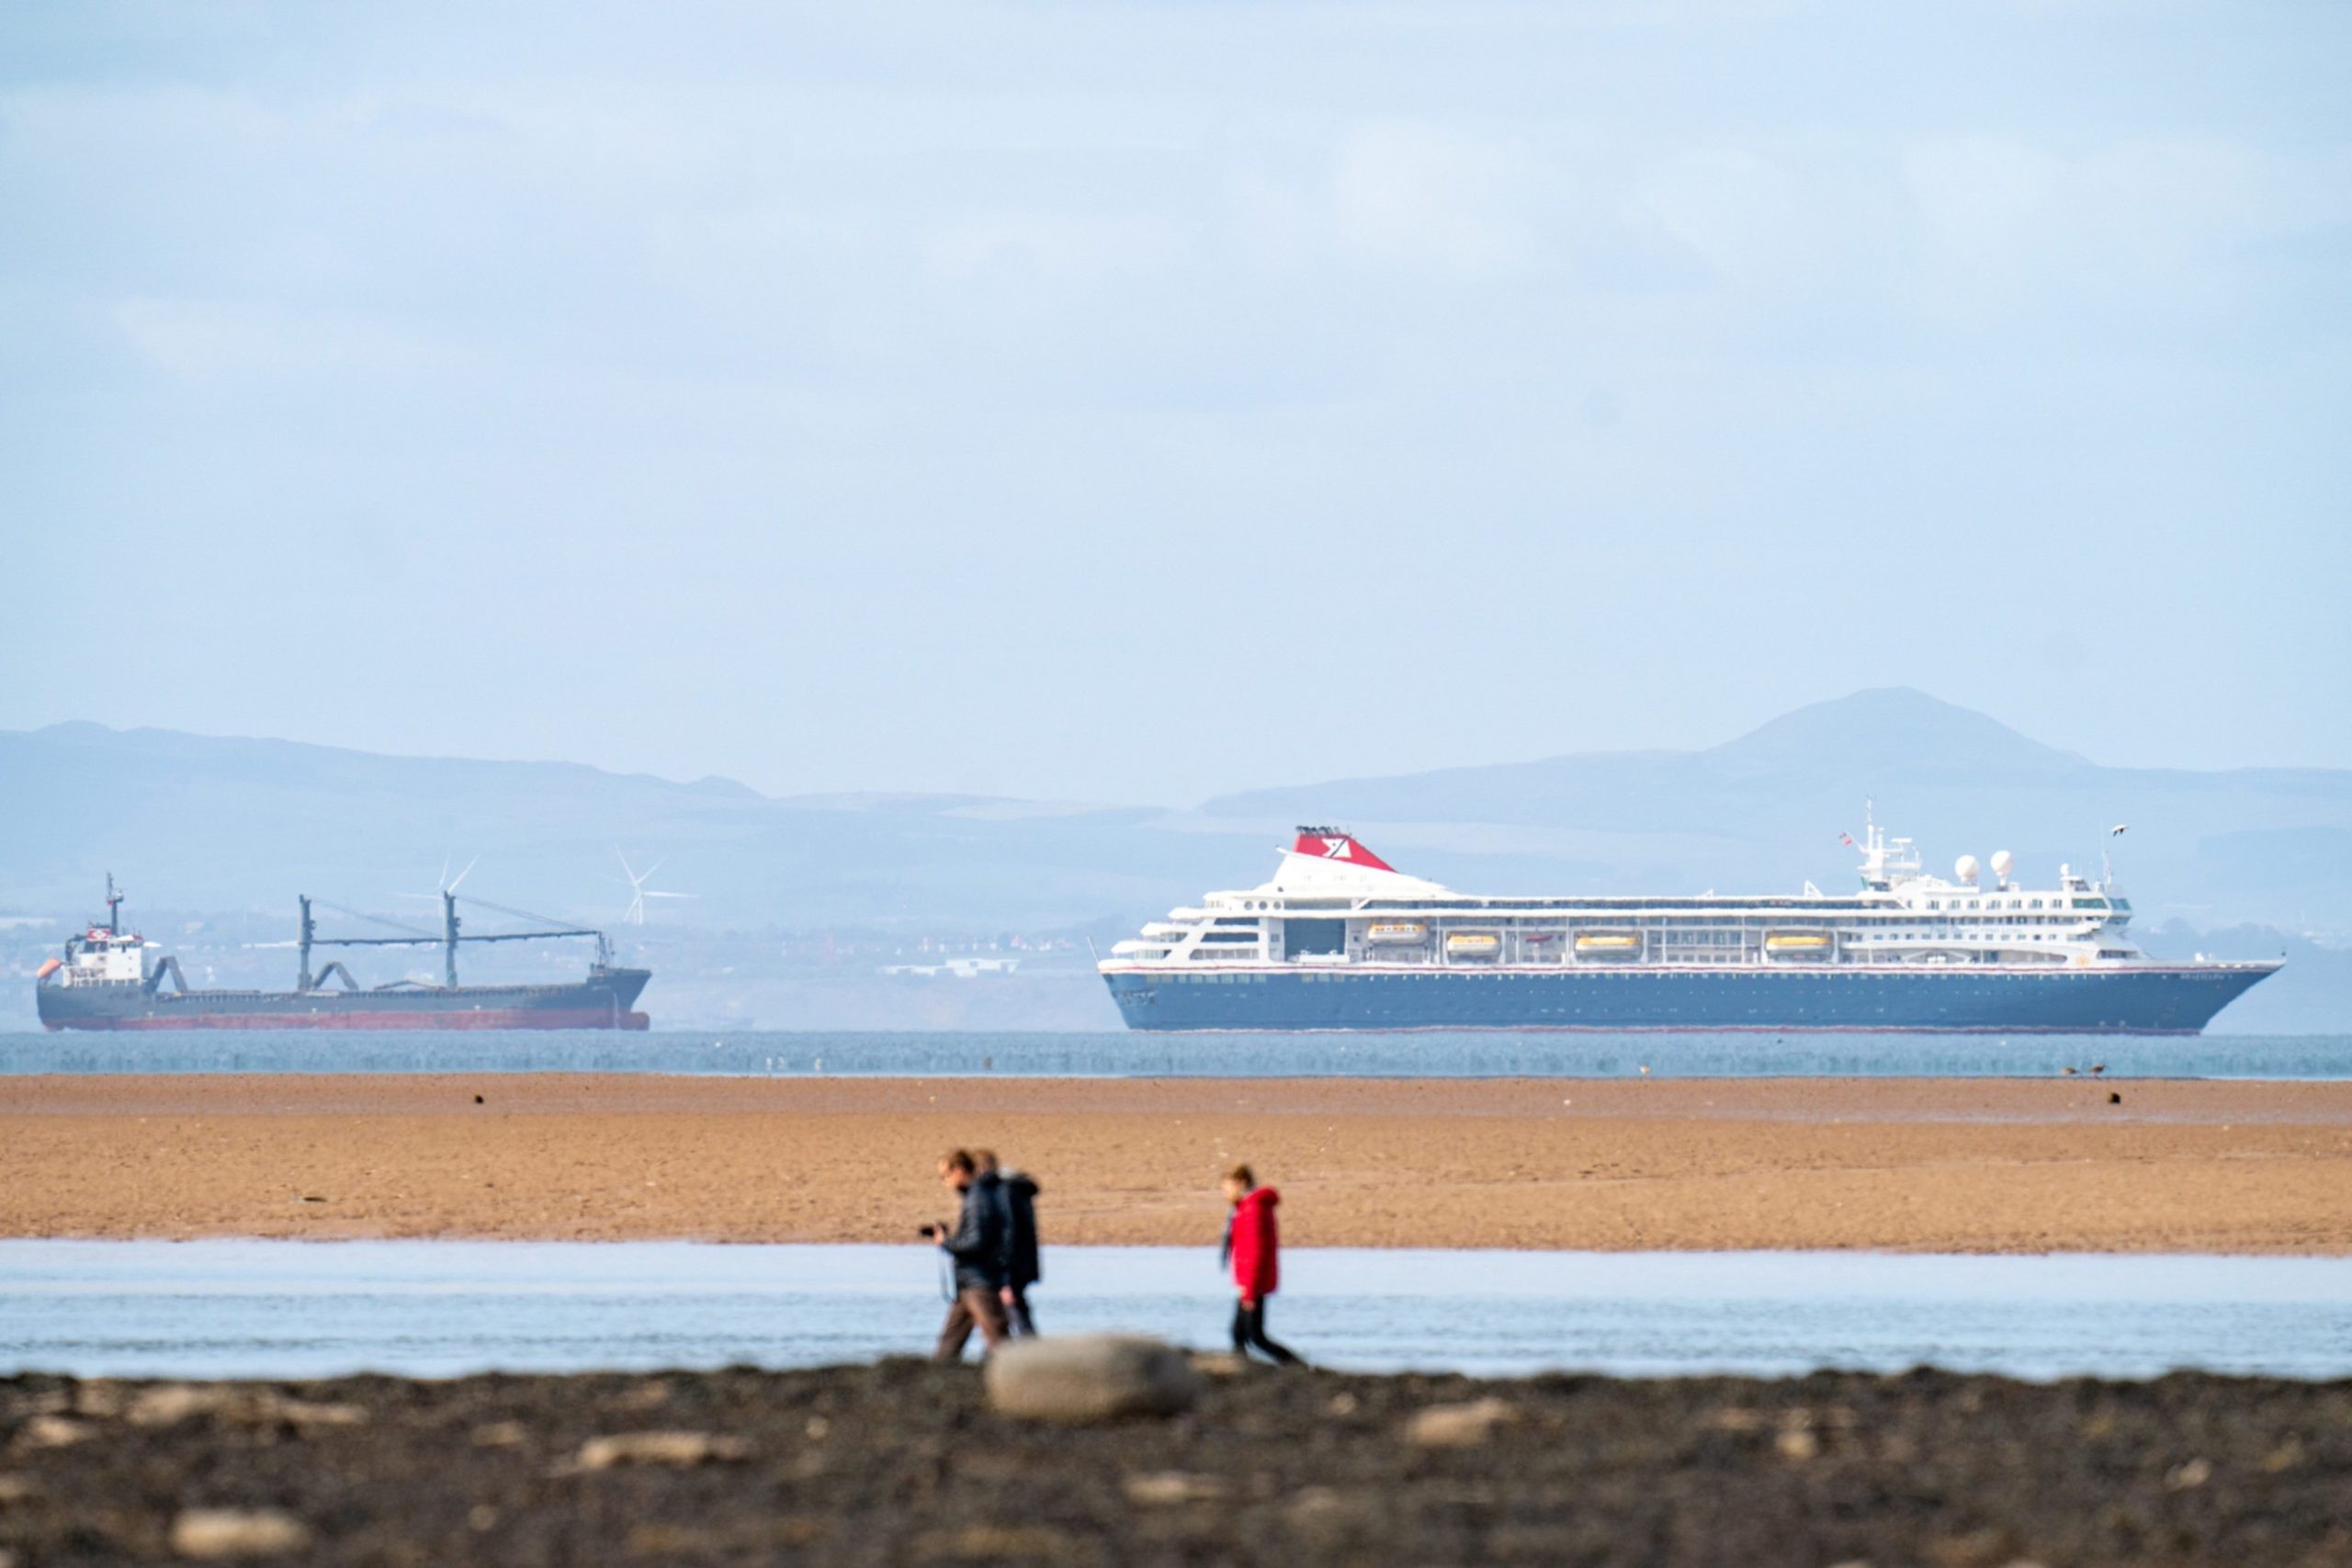 Fred Olsen cruise ship in the Forth